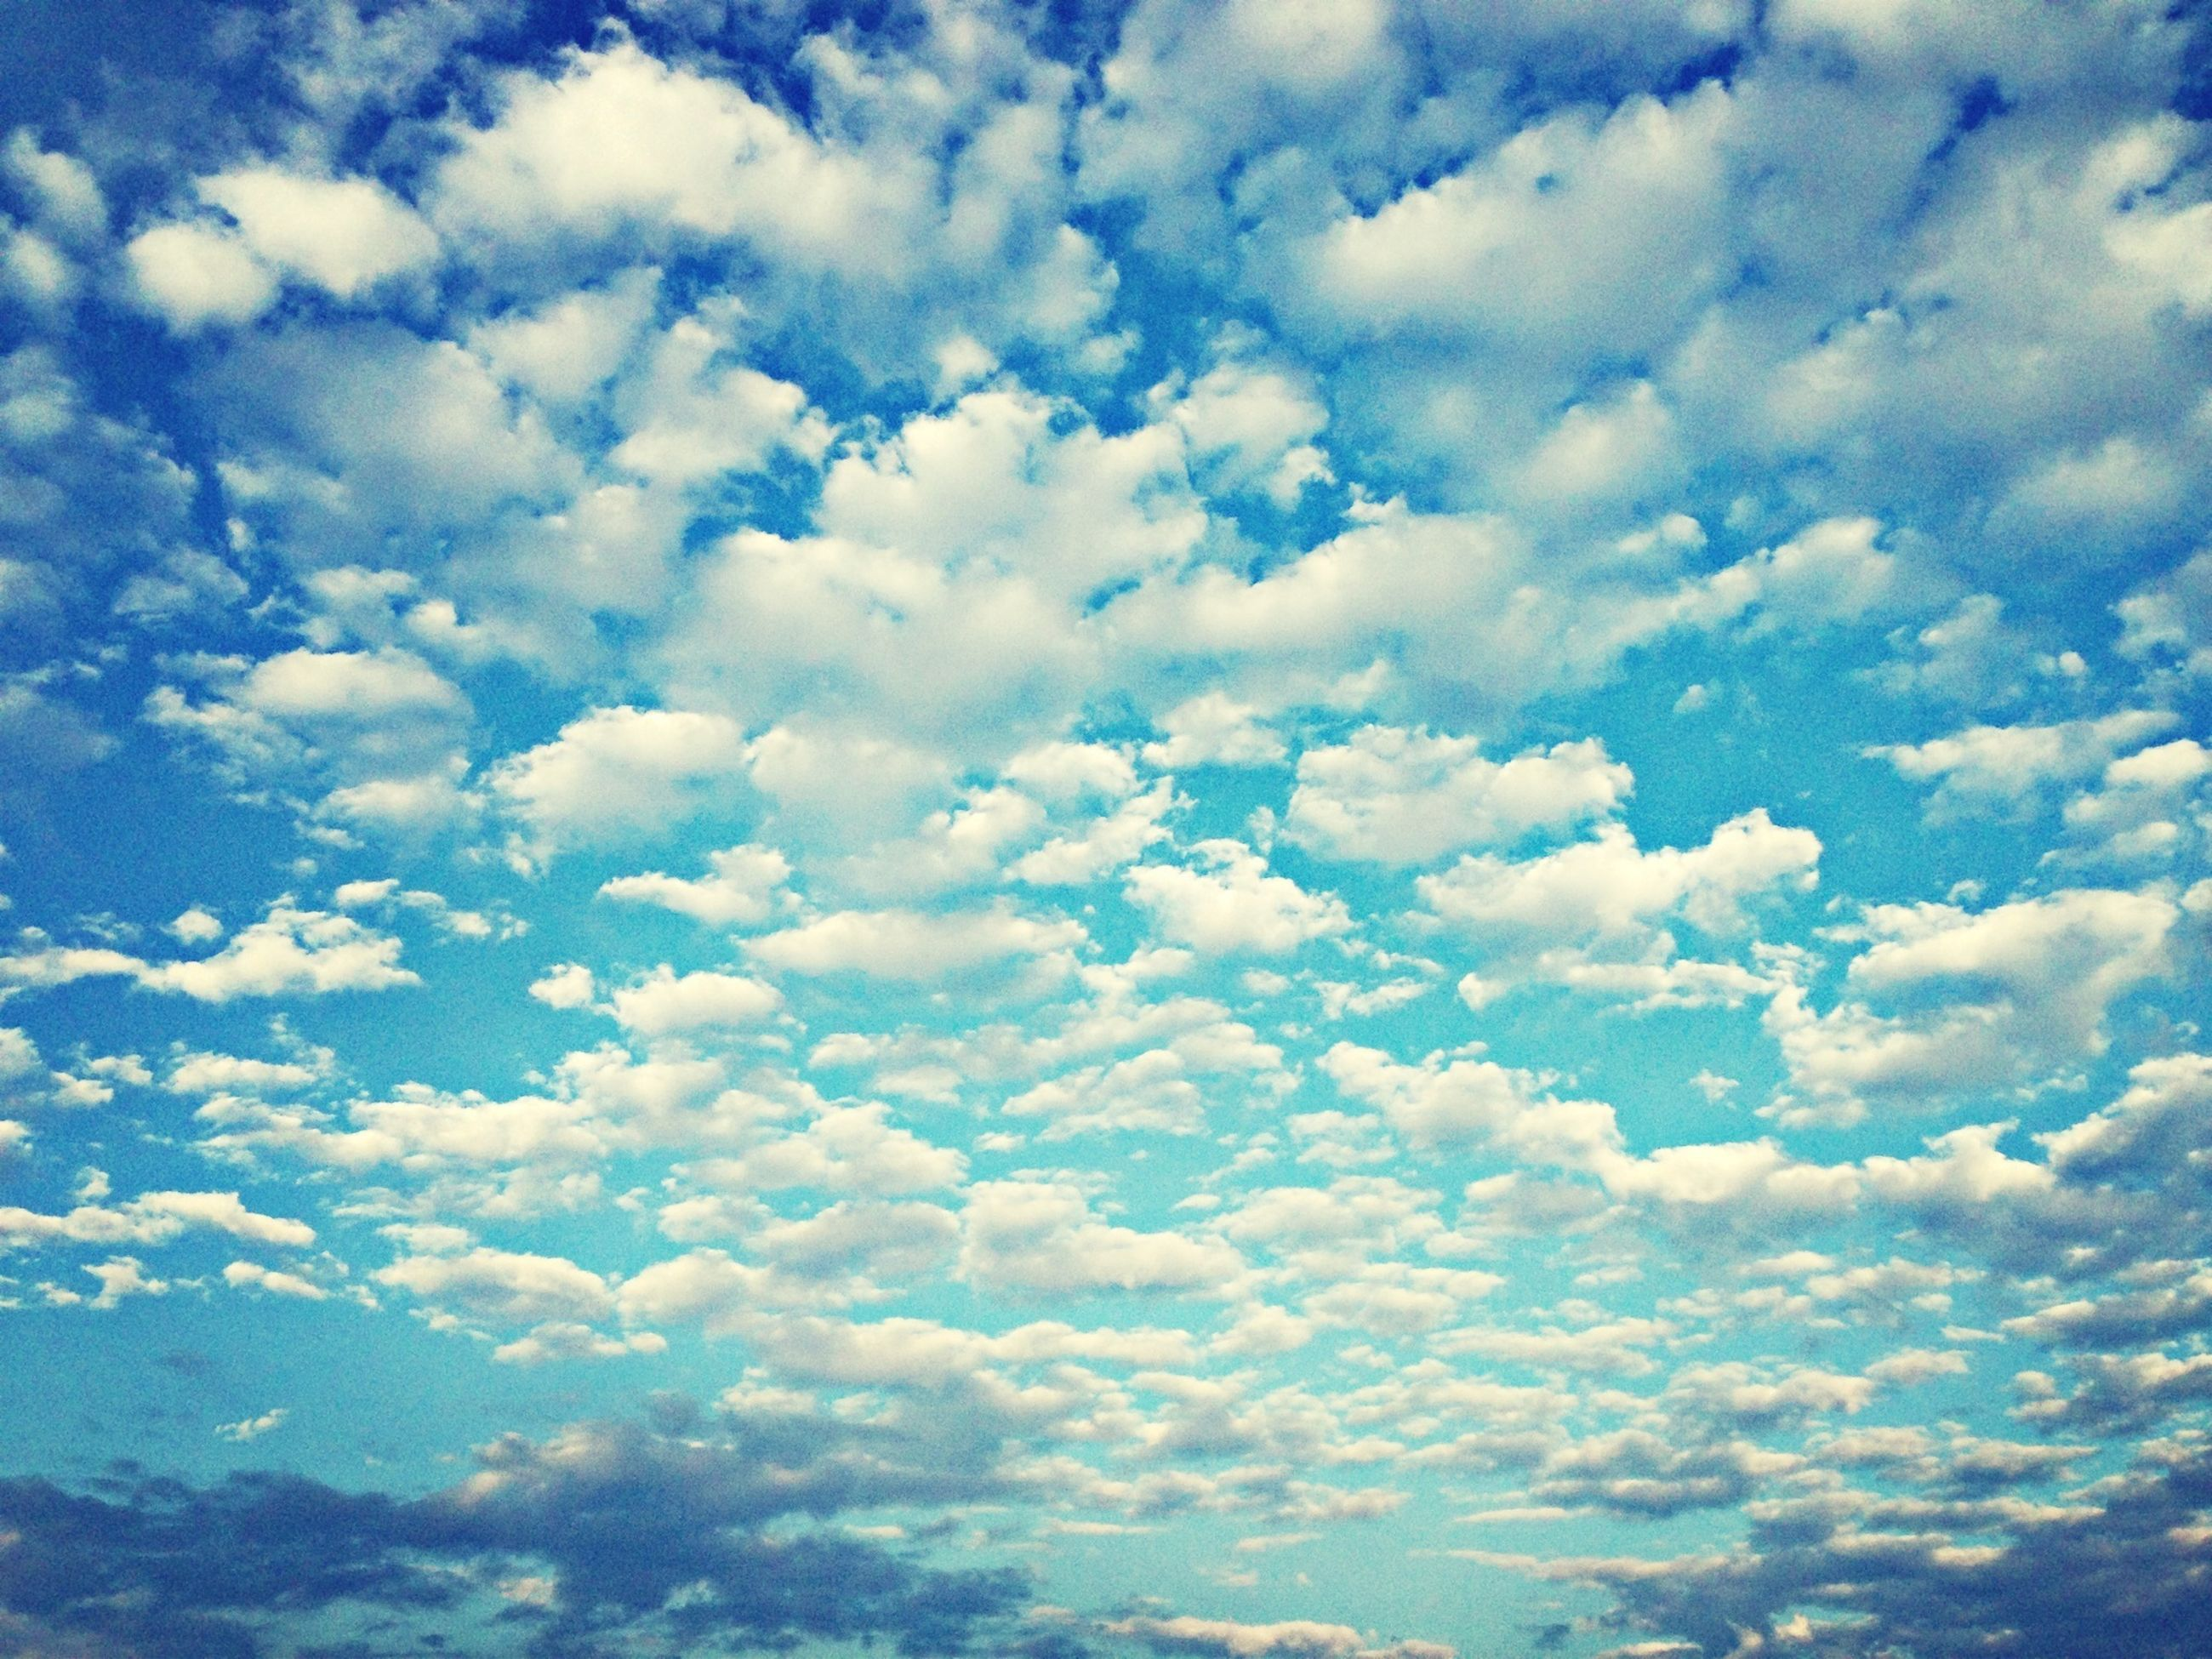 sky, cloud - sky, beauty in nature, scenics, blue, tranquility, tranquil scene, nature, sky only, cloudscape, cloudy, white color, low angle view, backgrounds, cloud, idyllic, full frame, weather, day, outdoors